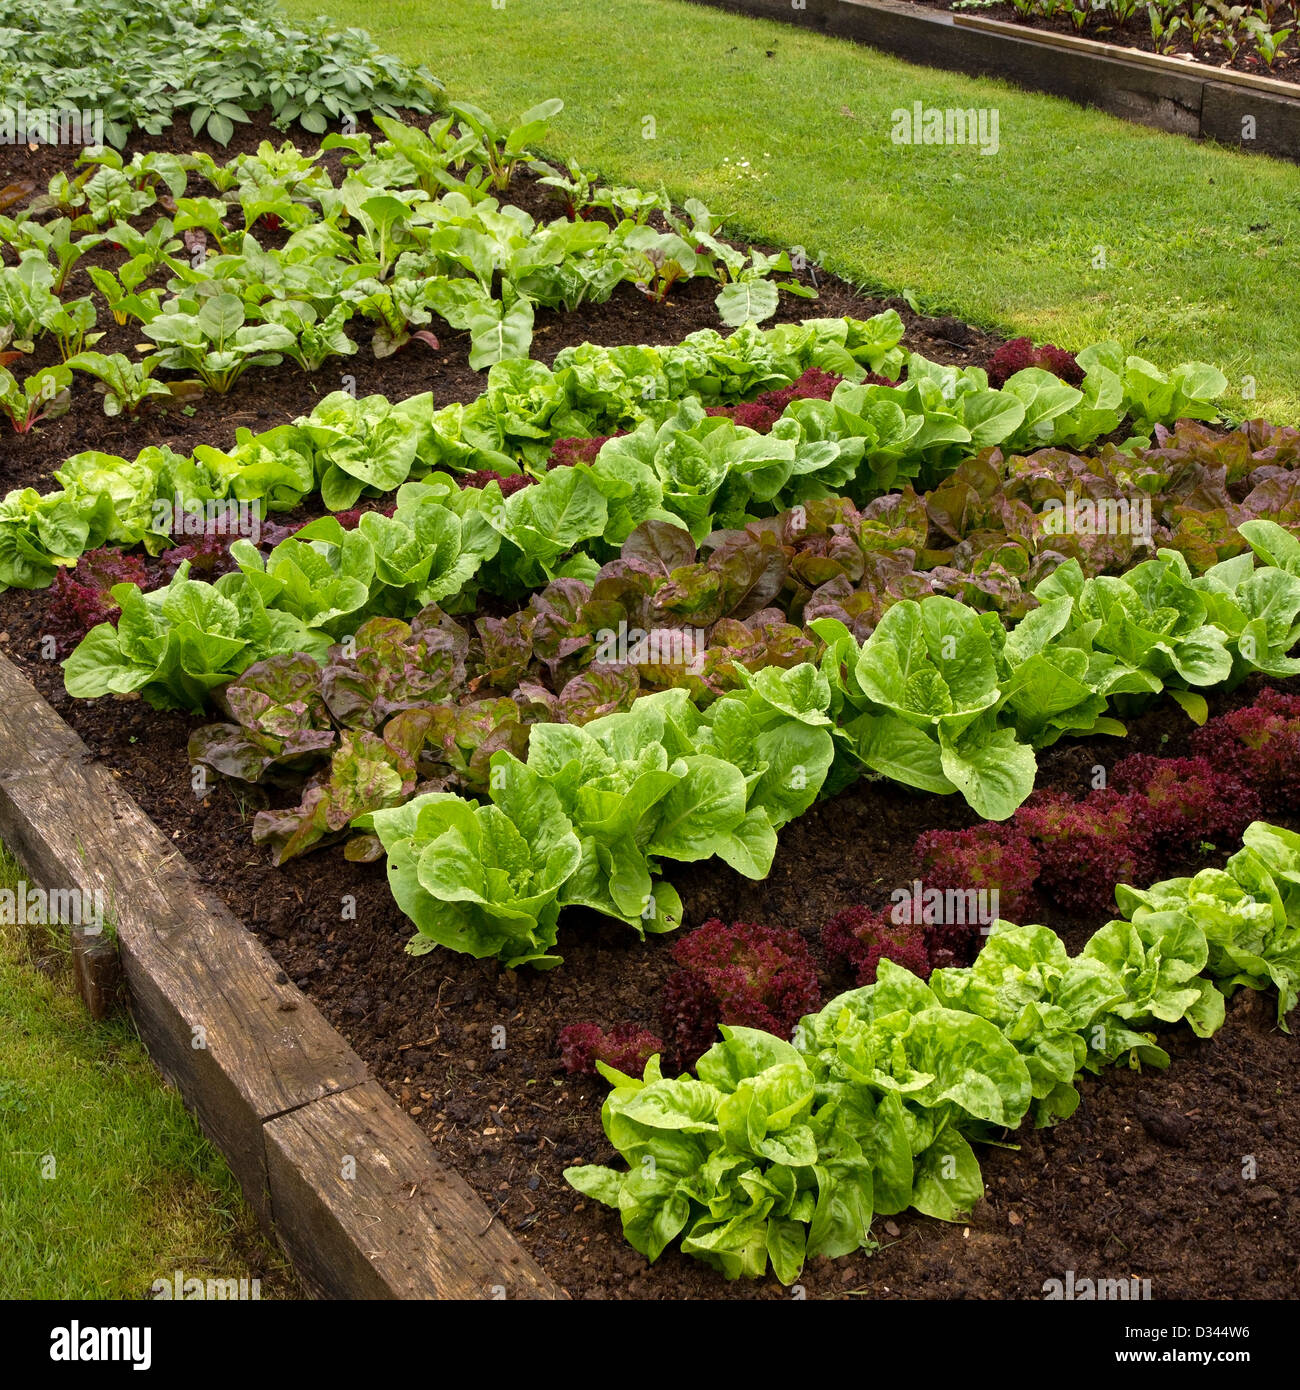 Rows of lettuce plants growing in vegetable garden easton for How to layout plants in a garden